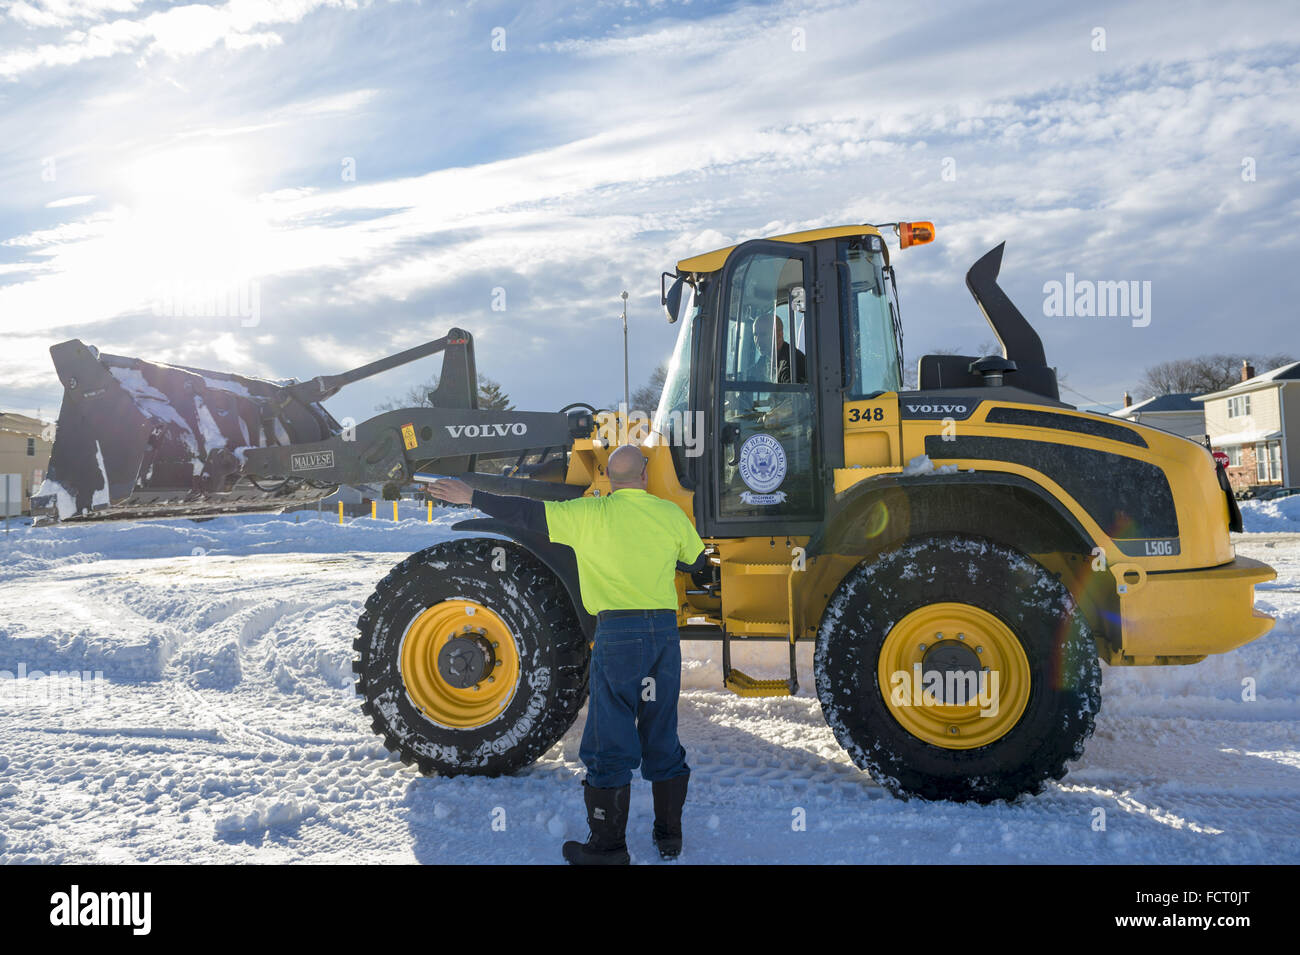 Merrick, New York, USA. 24th Jan, 2016. A Town of Hempstead Highway Department employee directs the operator of - Stock Image